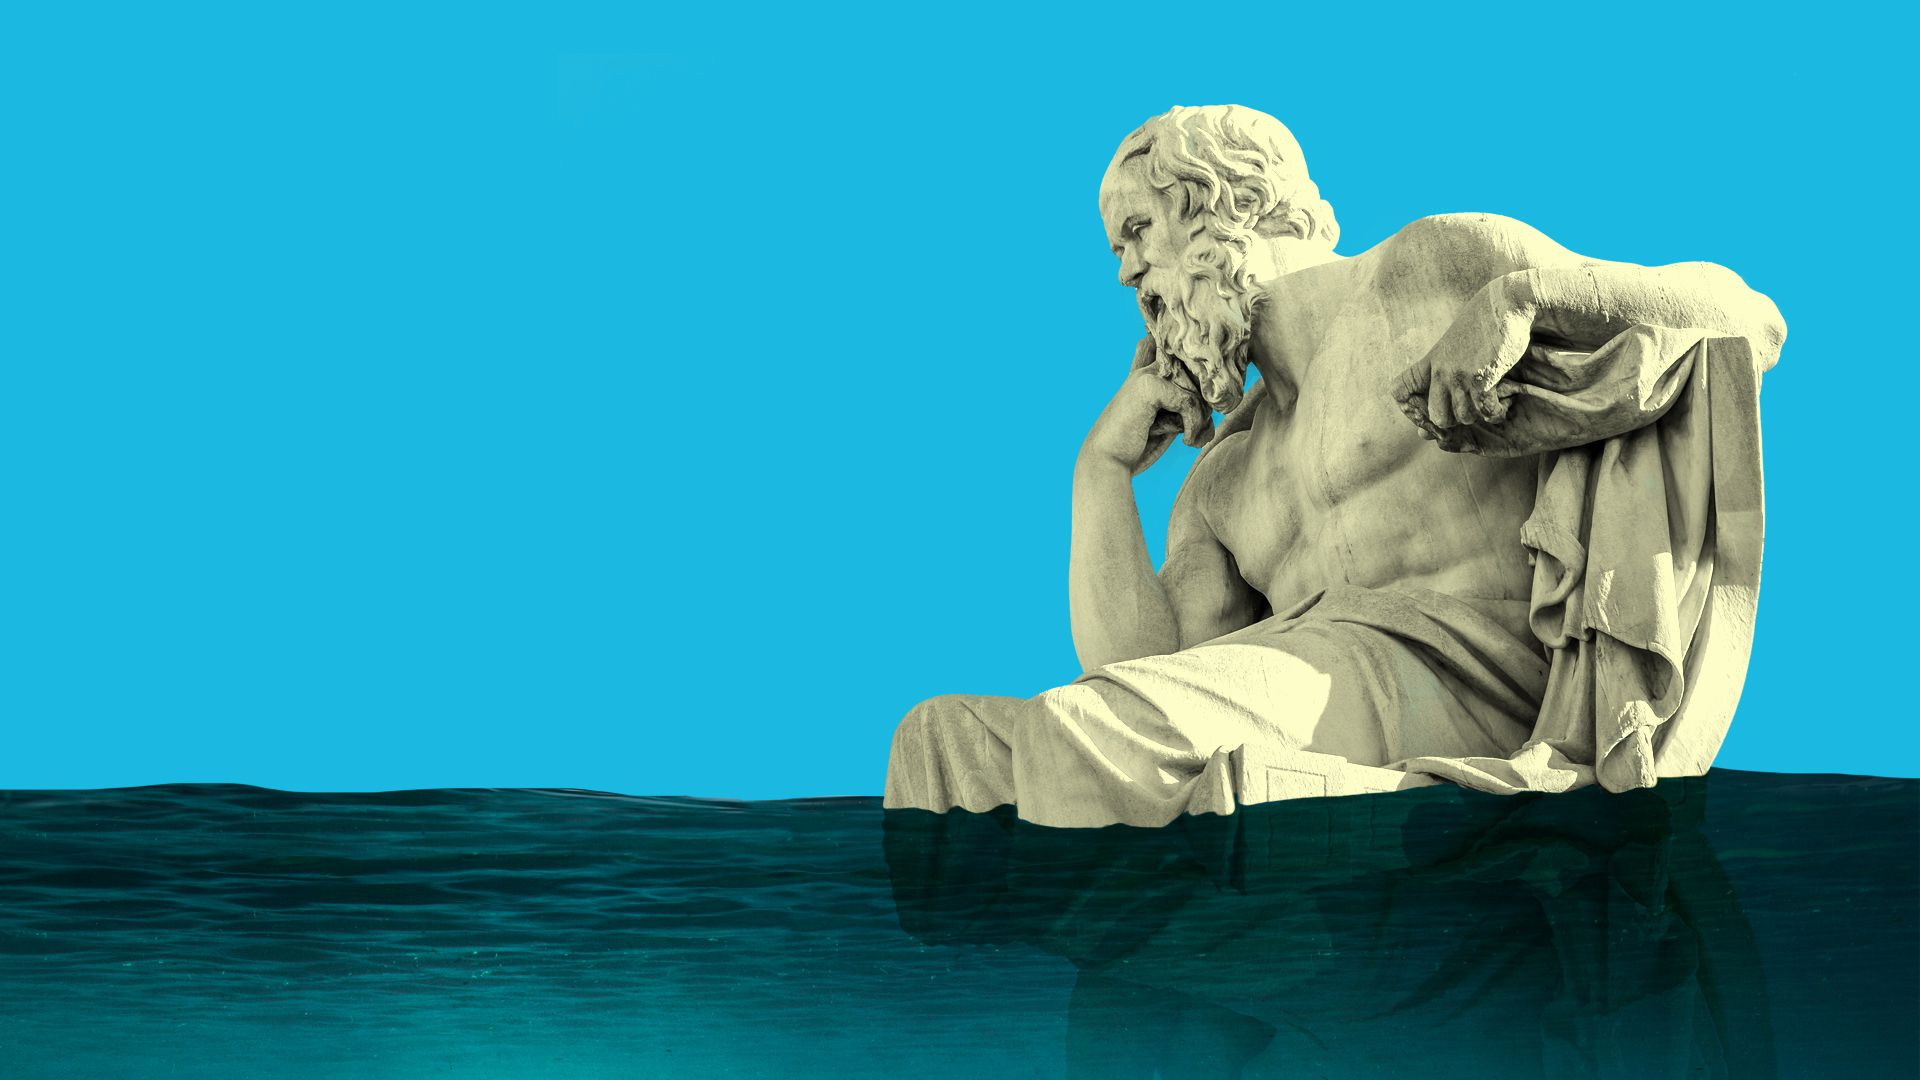 Illustration of Socrates statue surrounded by rising water, as sea level rise threatens cultural sites.